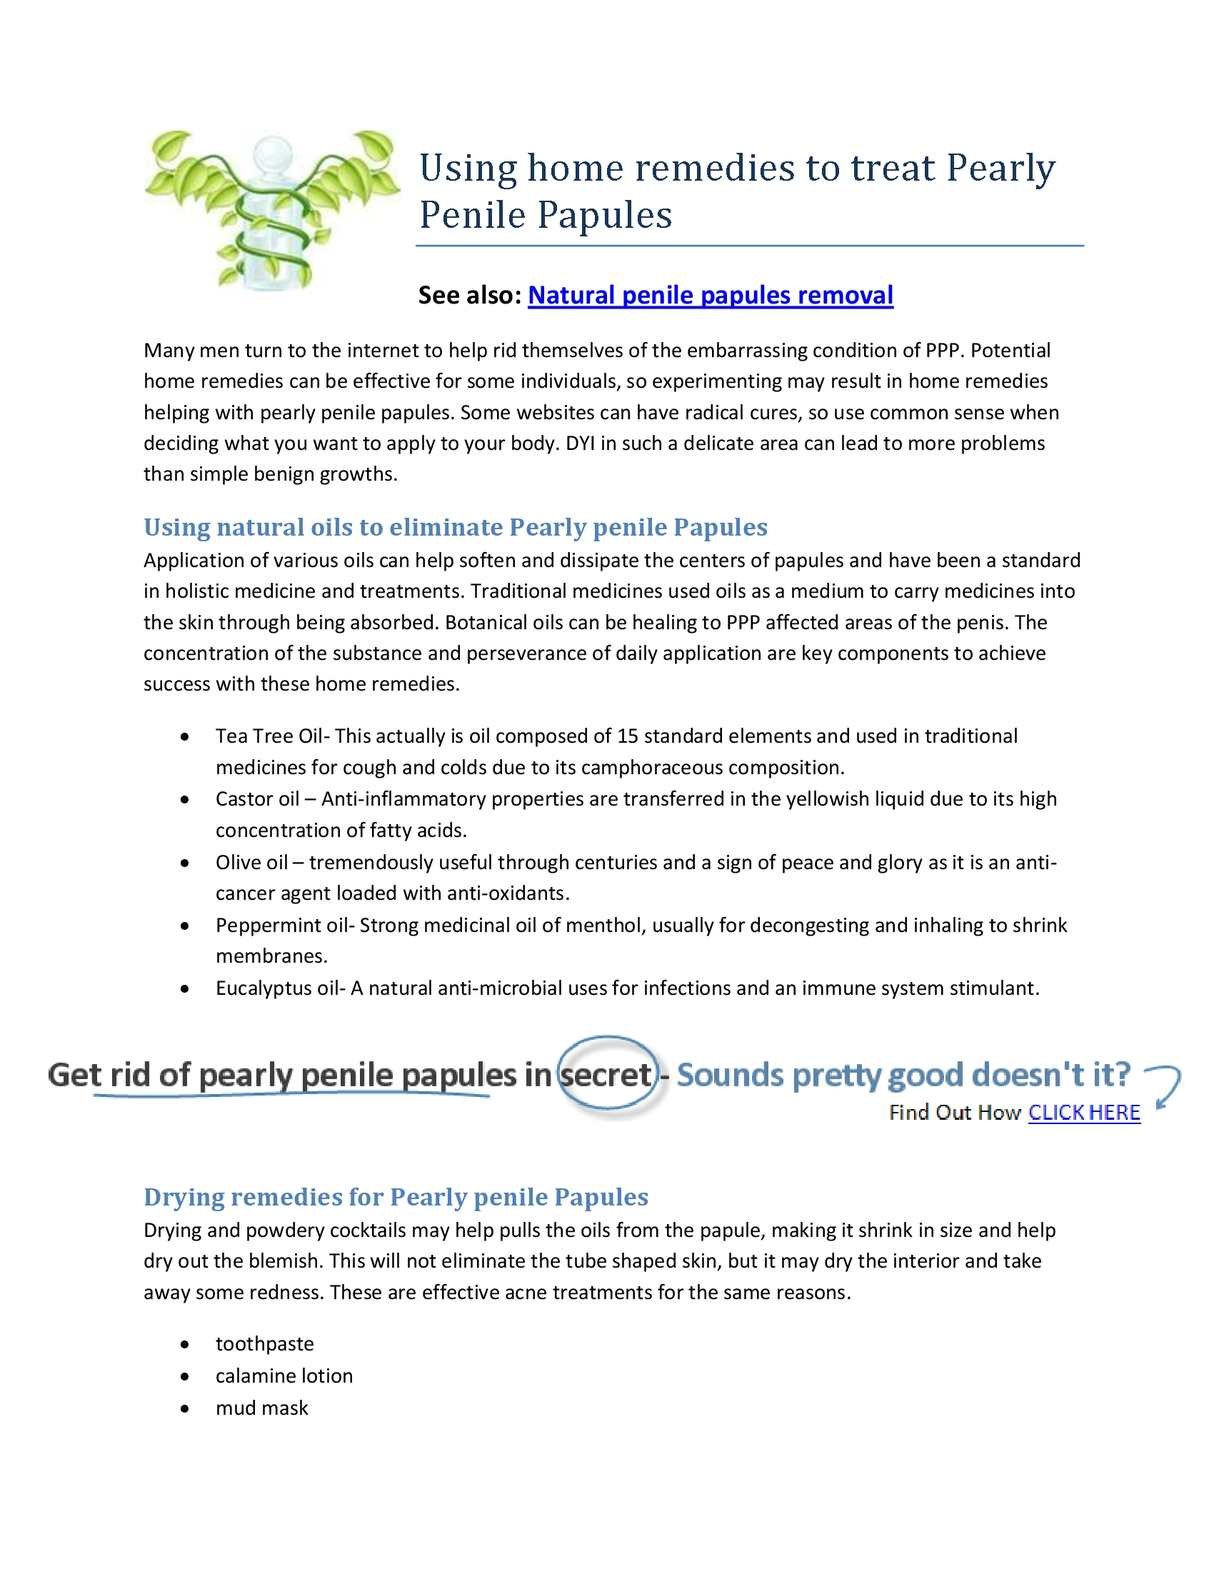 How to treat pearly penile papules